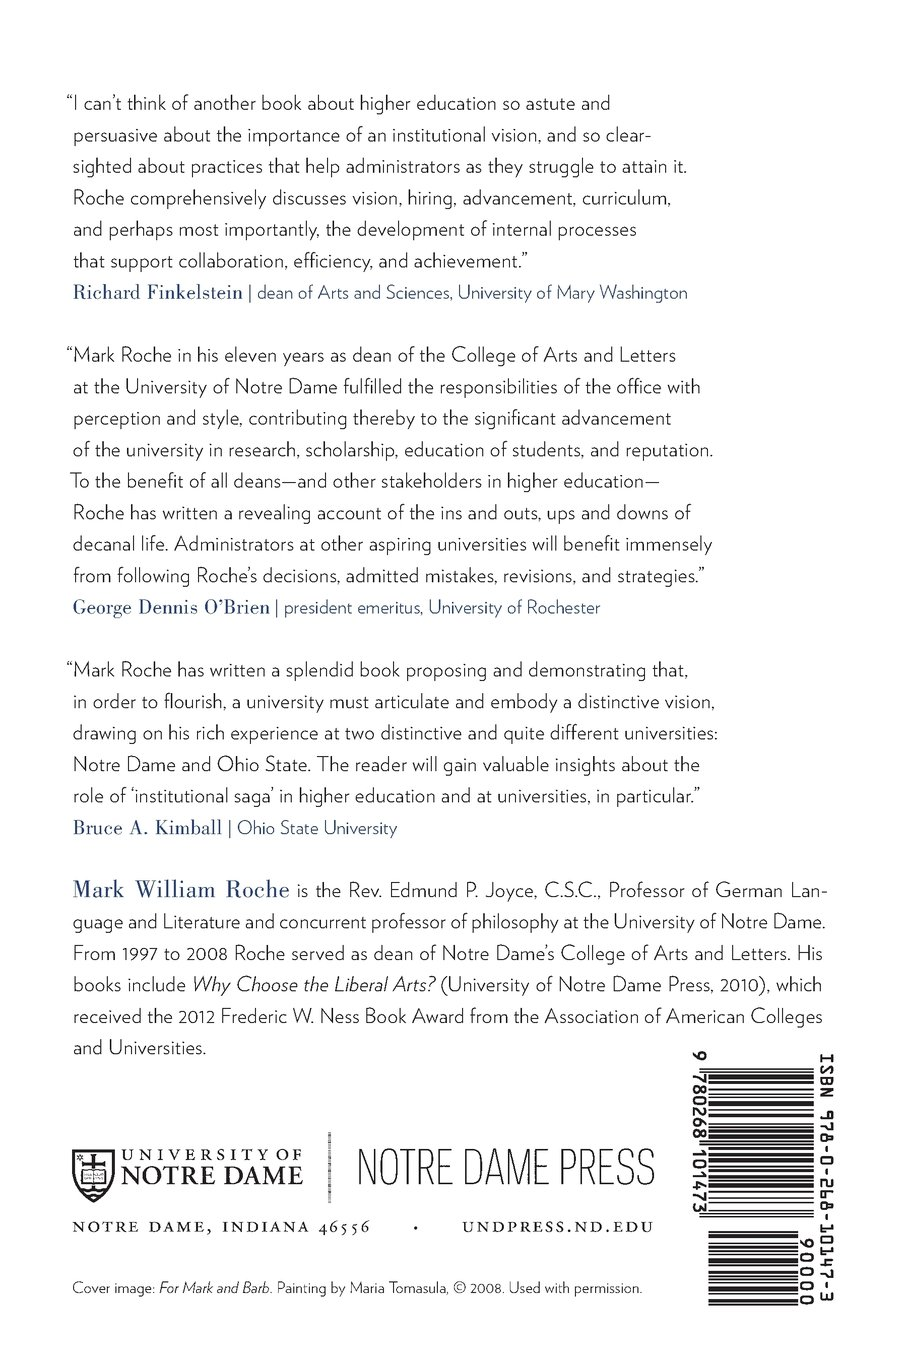 Realizing The Distinctive University: Vision And Values, Strategy And  Culture: Mark William Roche: 9780268101473: Amazon: Books